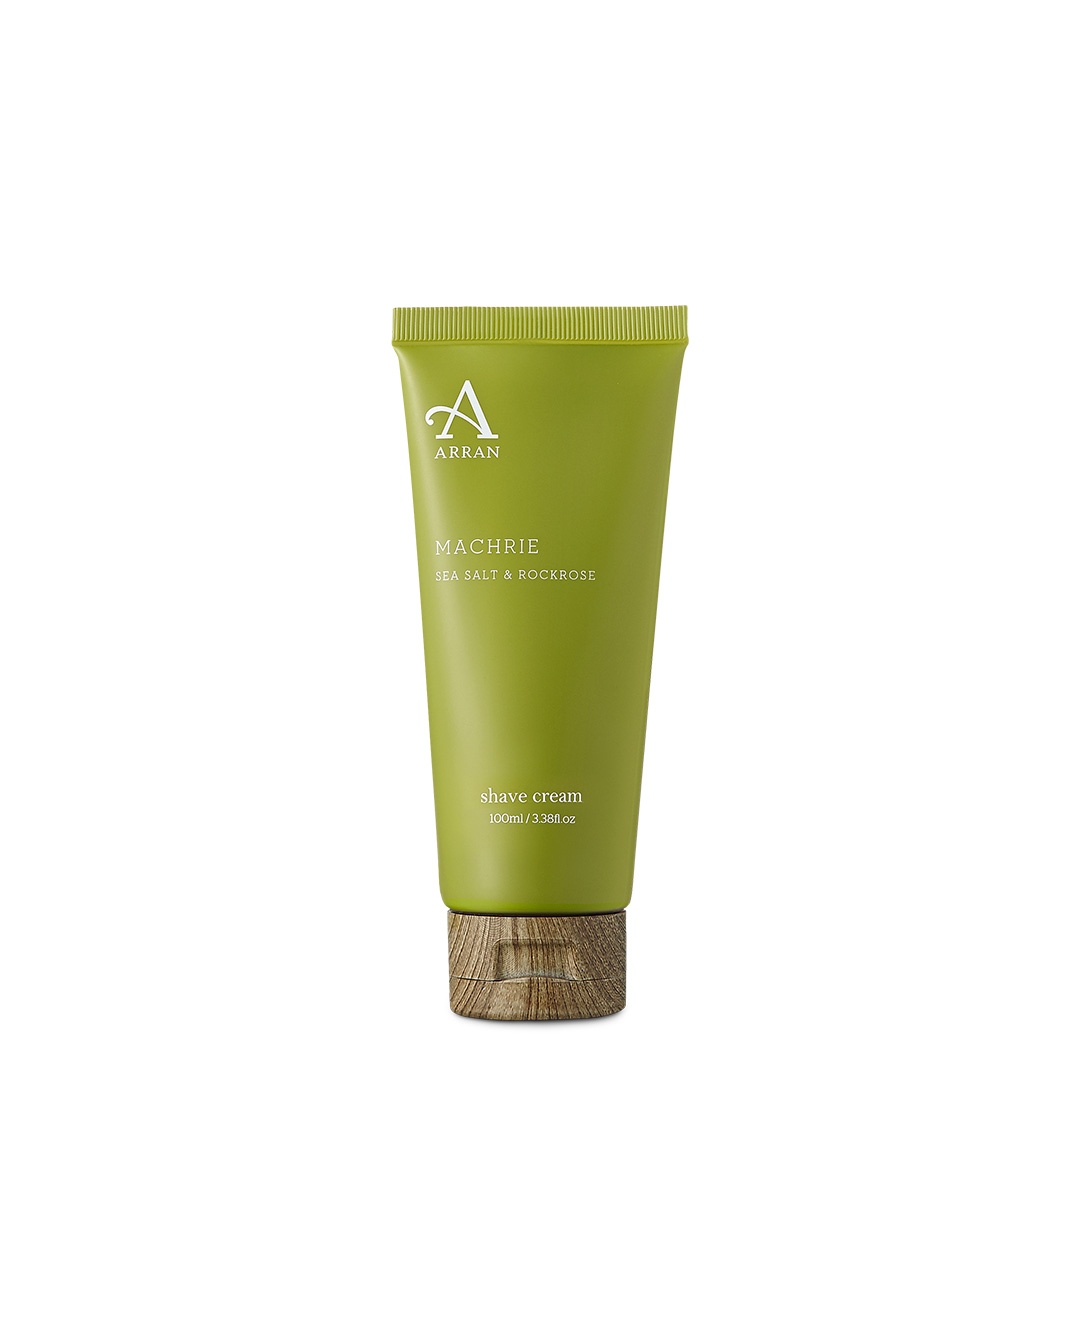 Arran Machrie Shave Cream 100ml